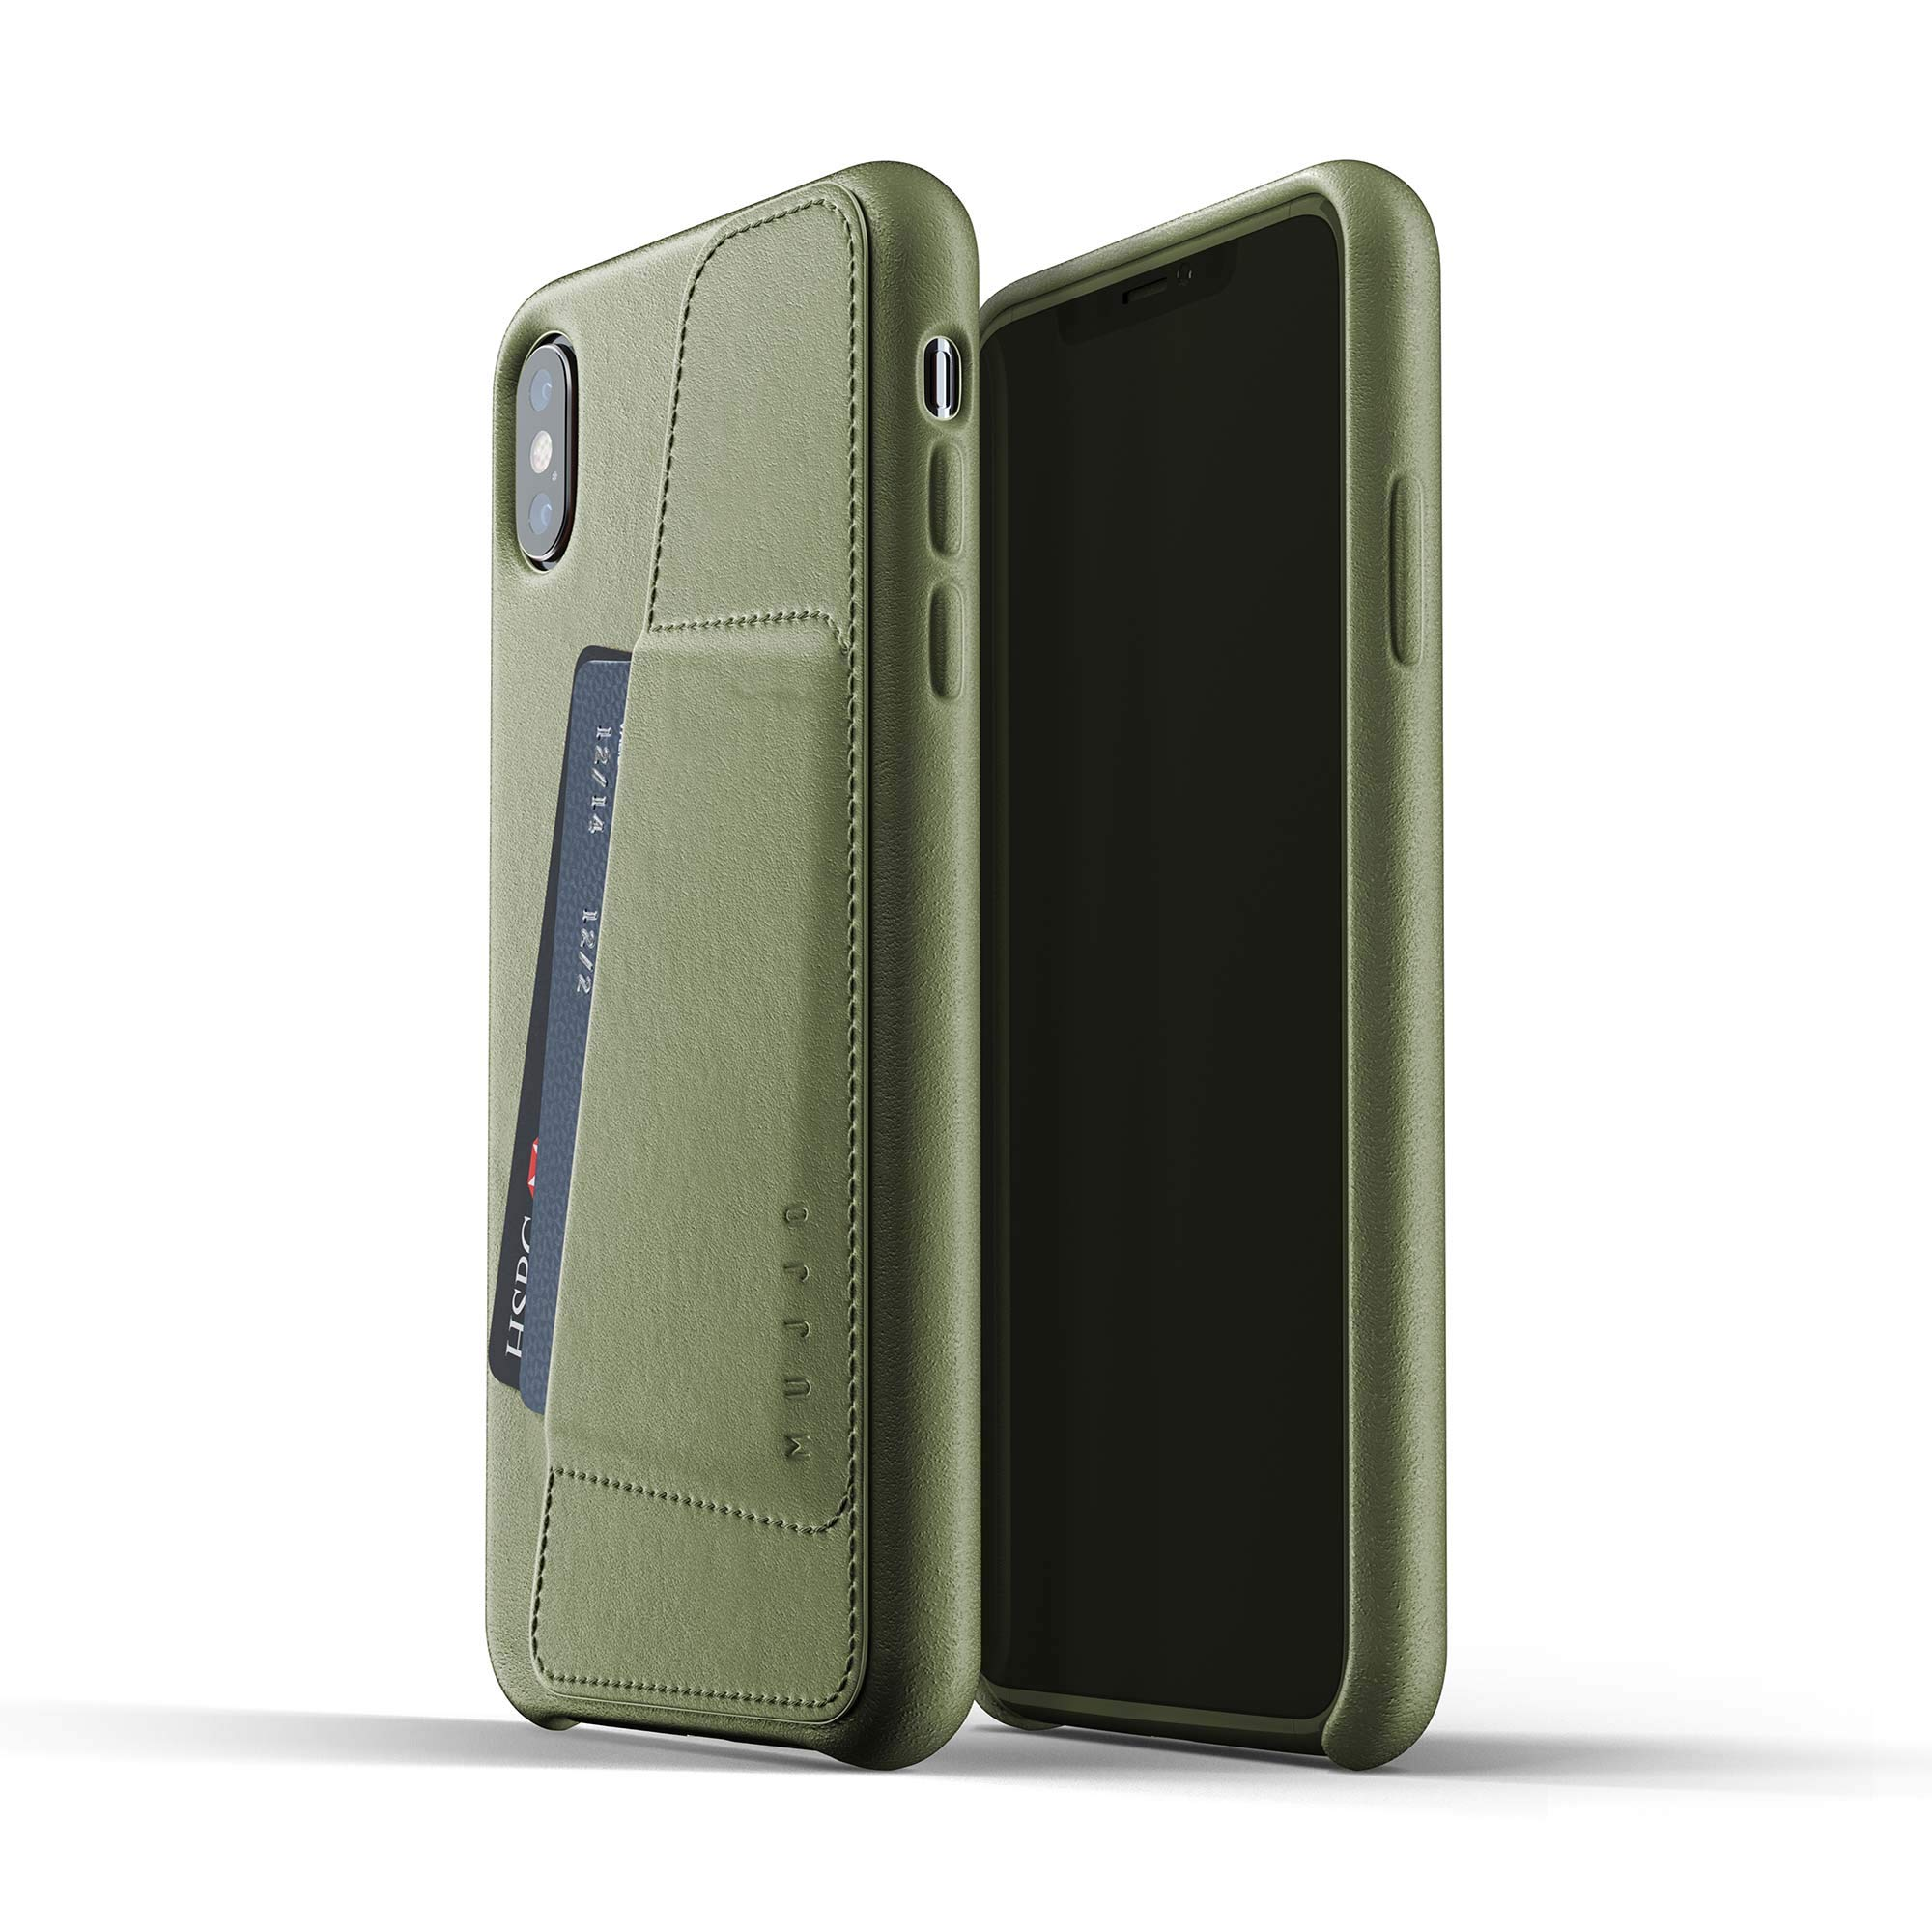 Mujjo Full Leather Wallet Case for iPhone Xs Max   Premium Genuine Leather, Natural Aging Effect   Pocket for 2-3 Cards, Wireless Charging (Olive) by Mujjo